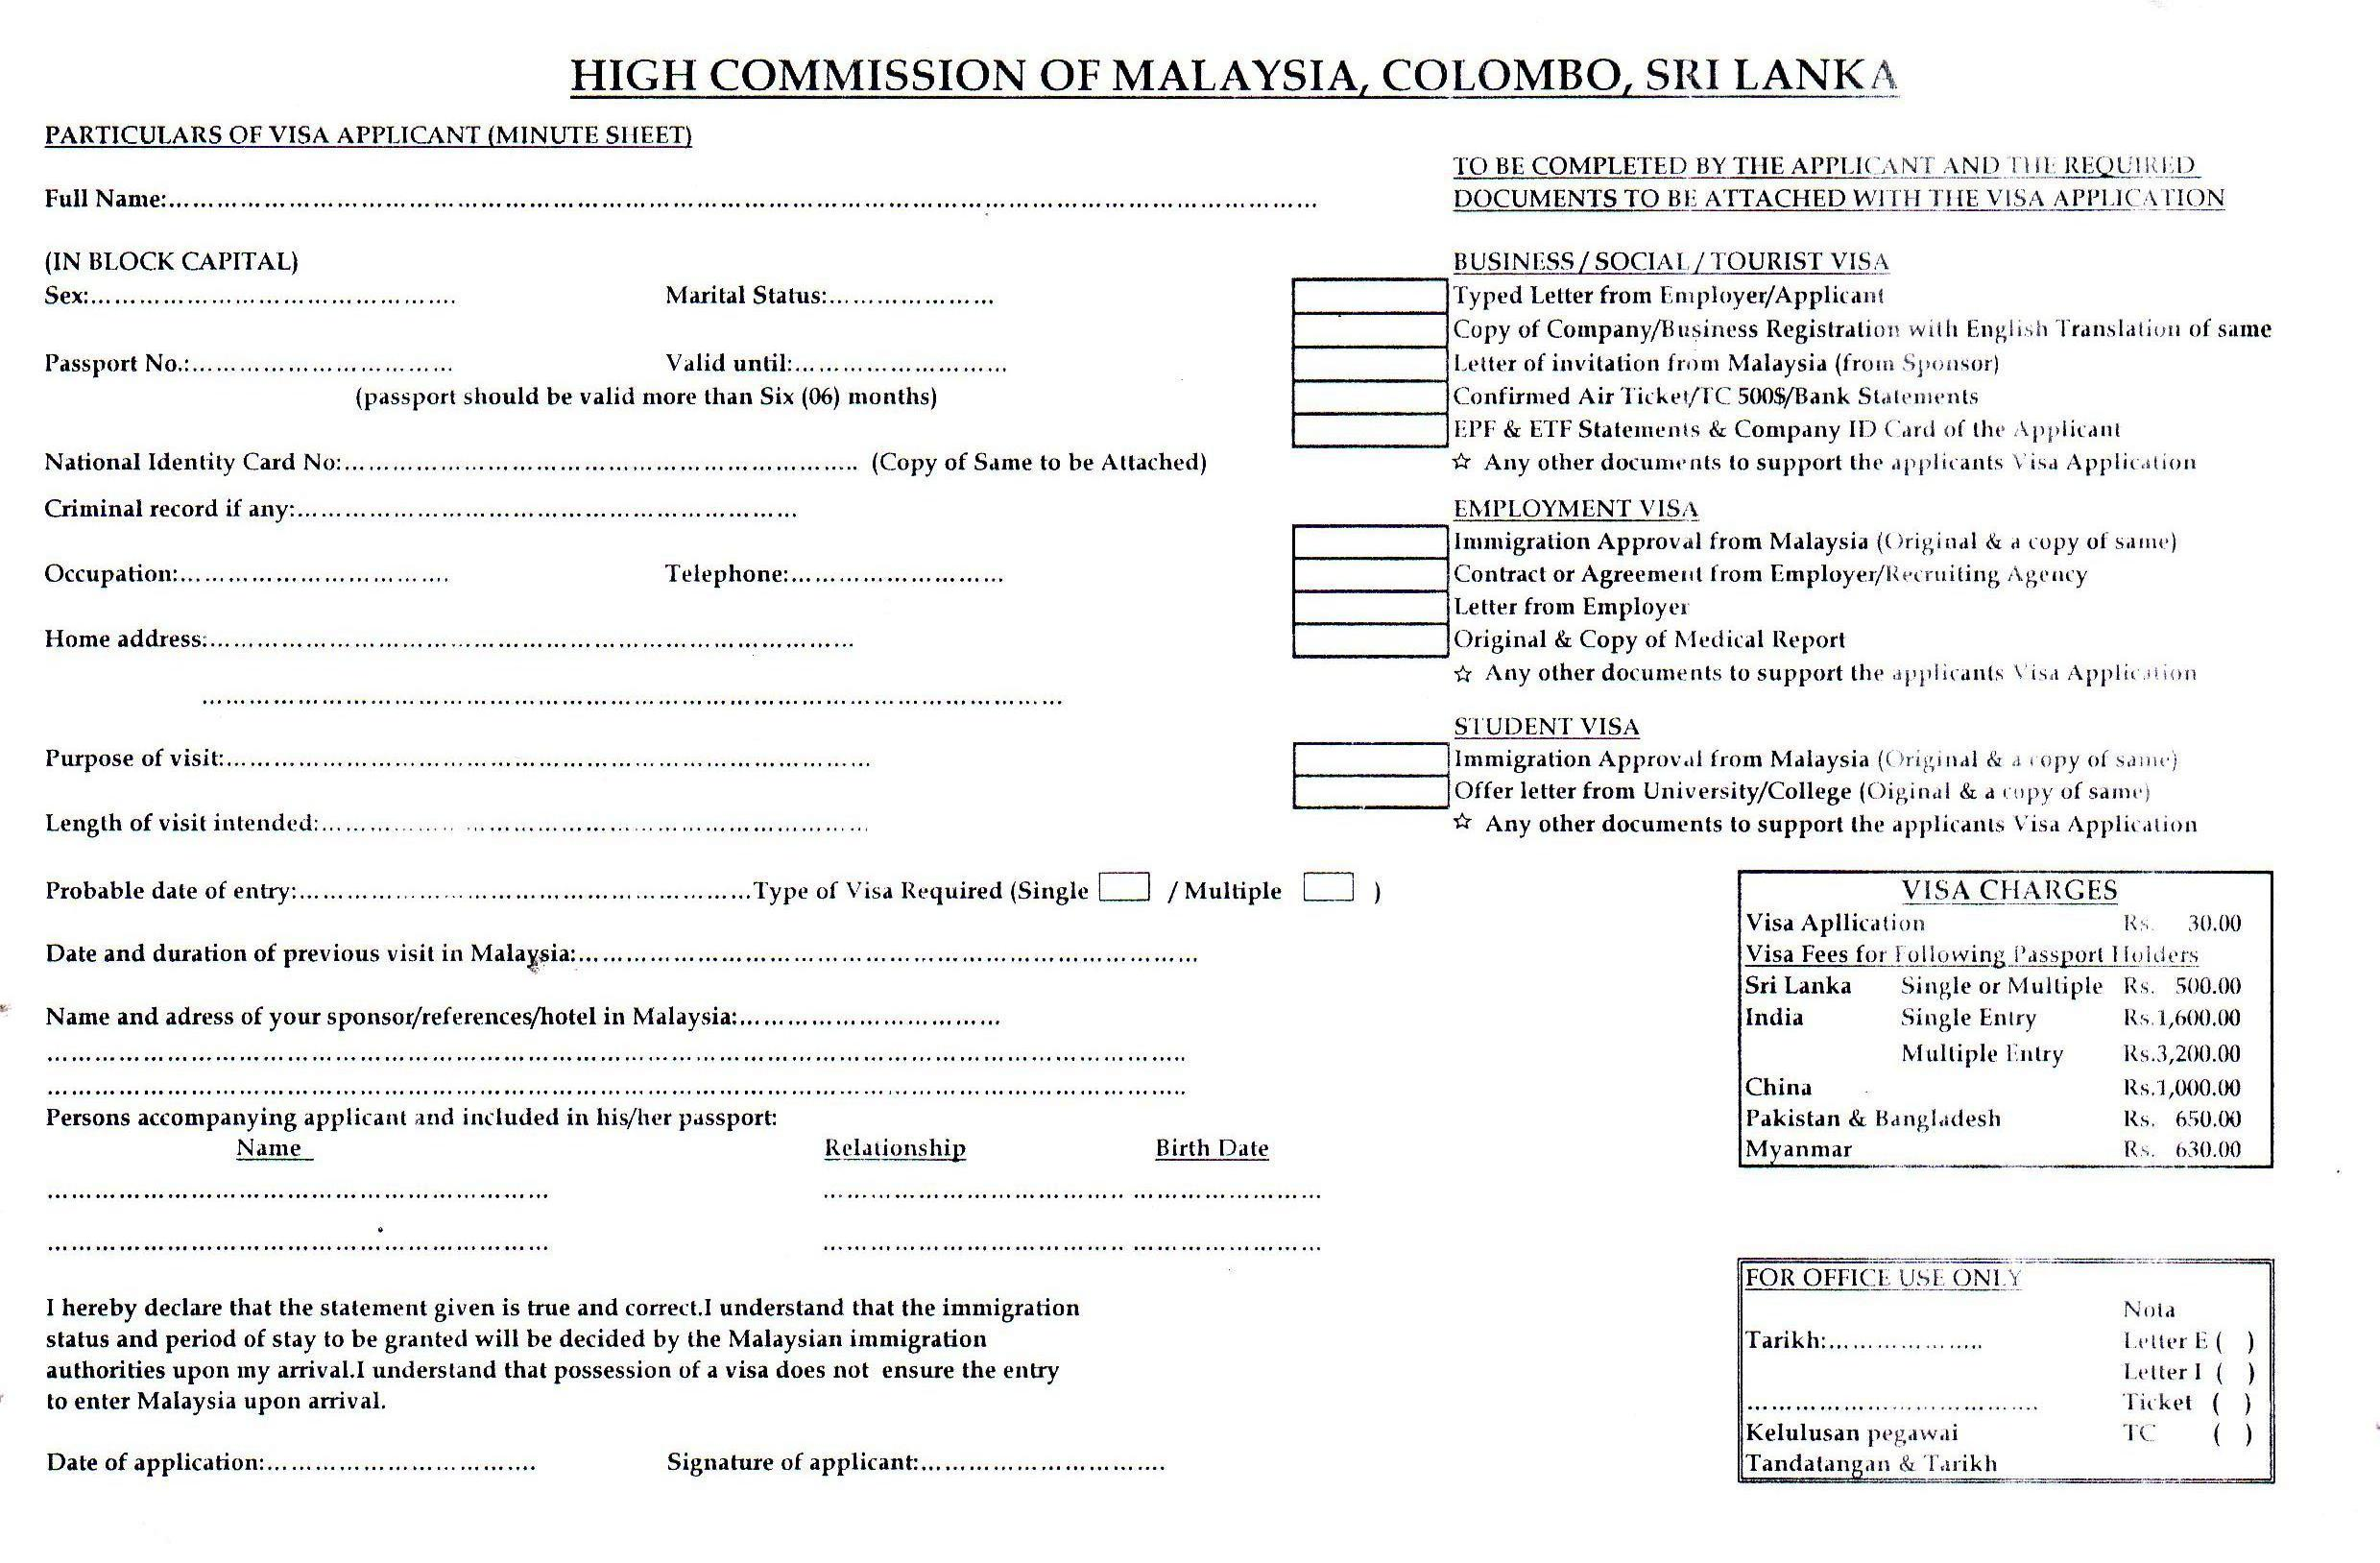 Visa Application Form For China From Sri Lanka